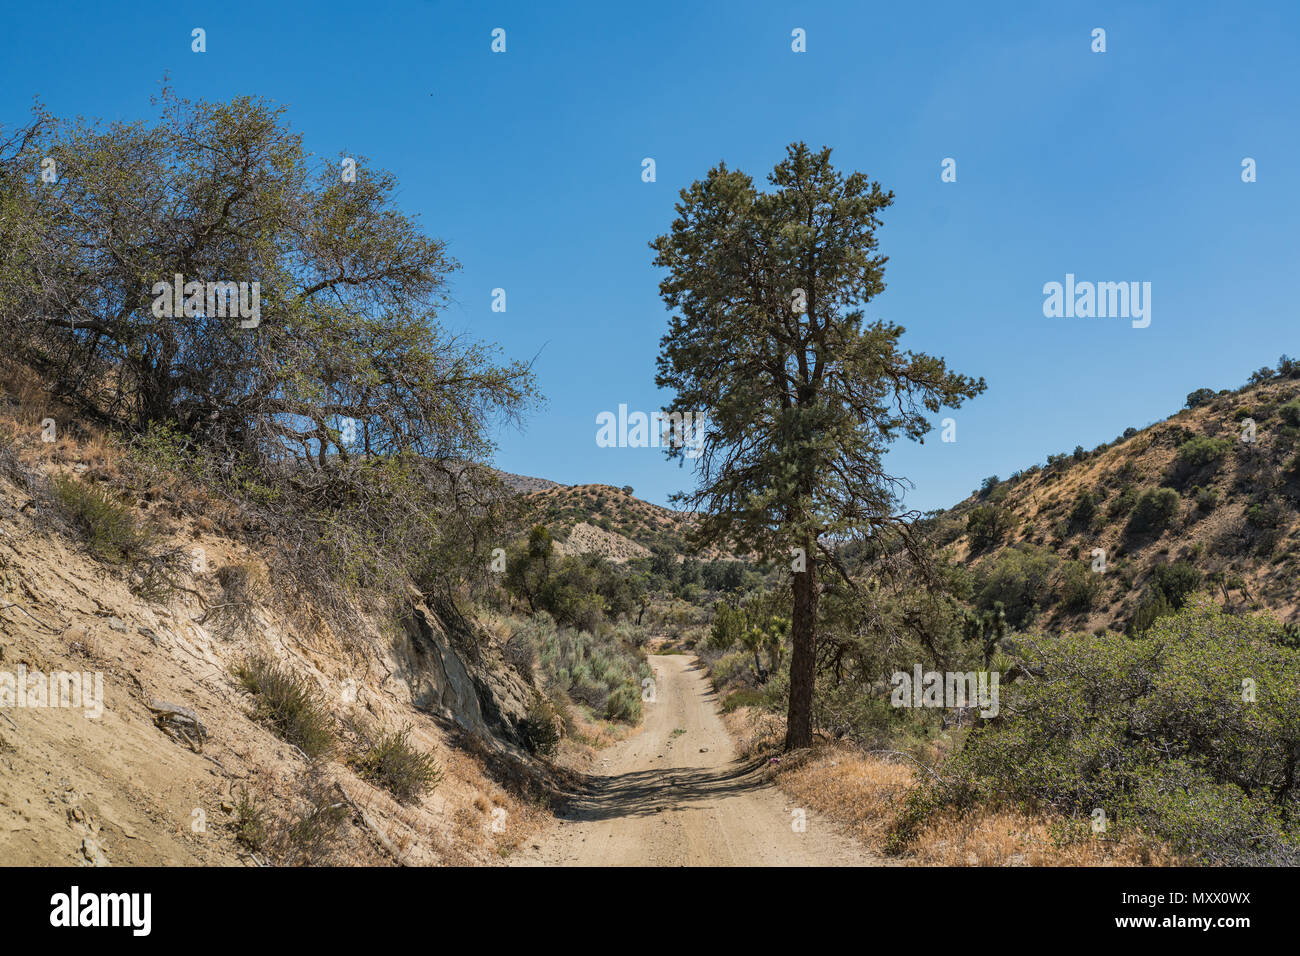 Dirt trail leads down into a wooded California canyon in the Mojave Desert of the southwest. - Stock Image